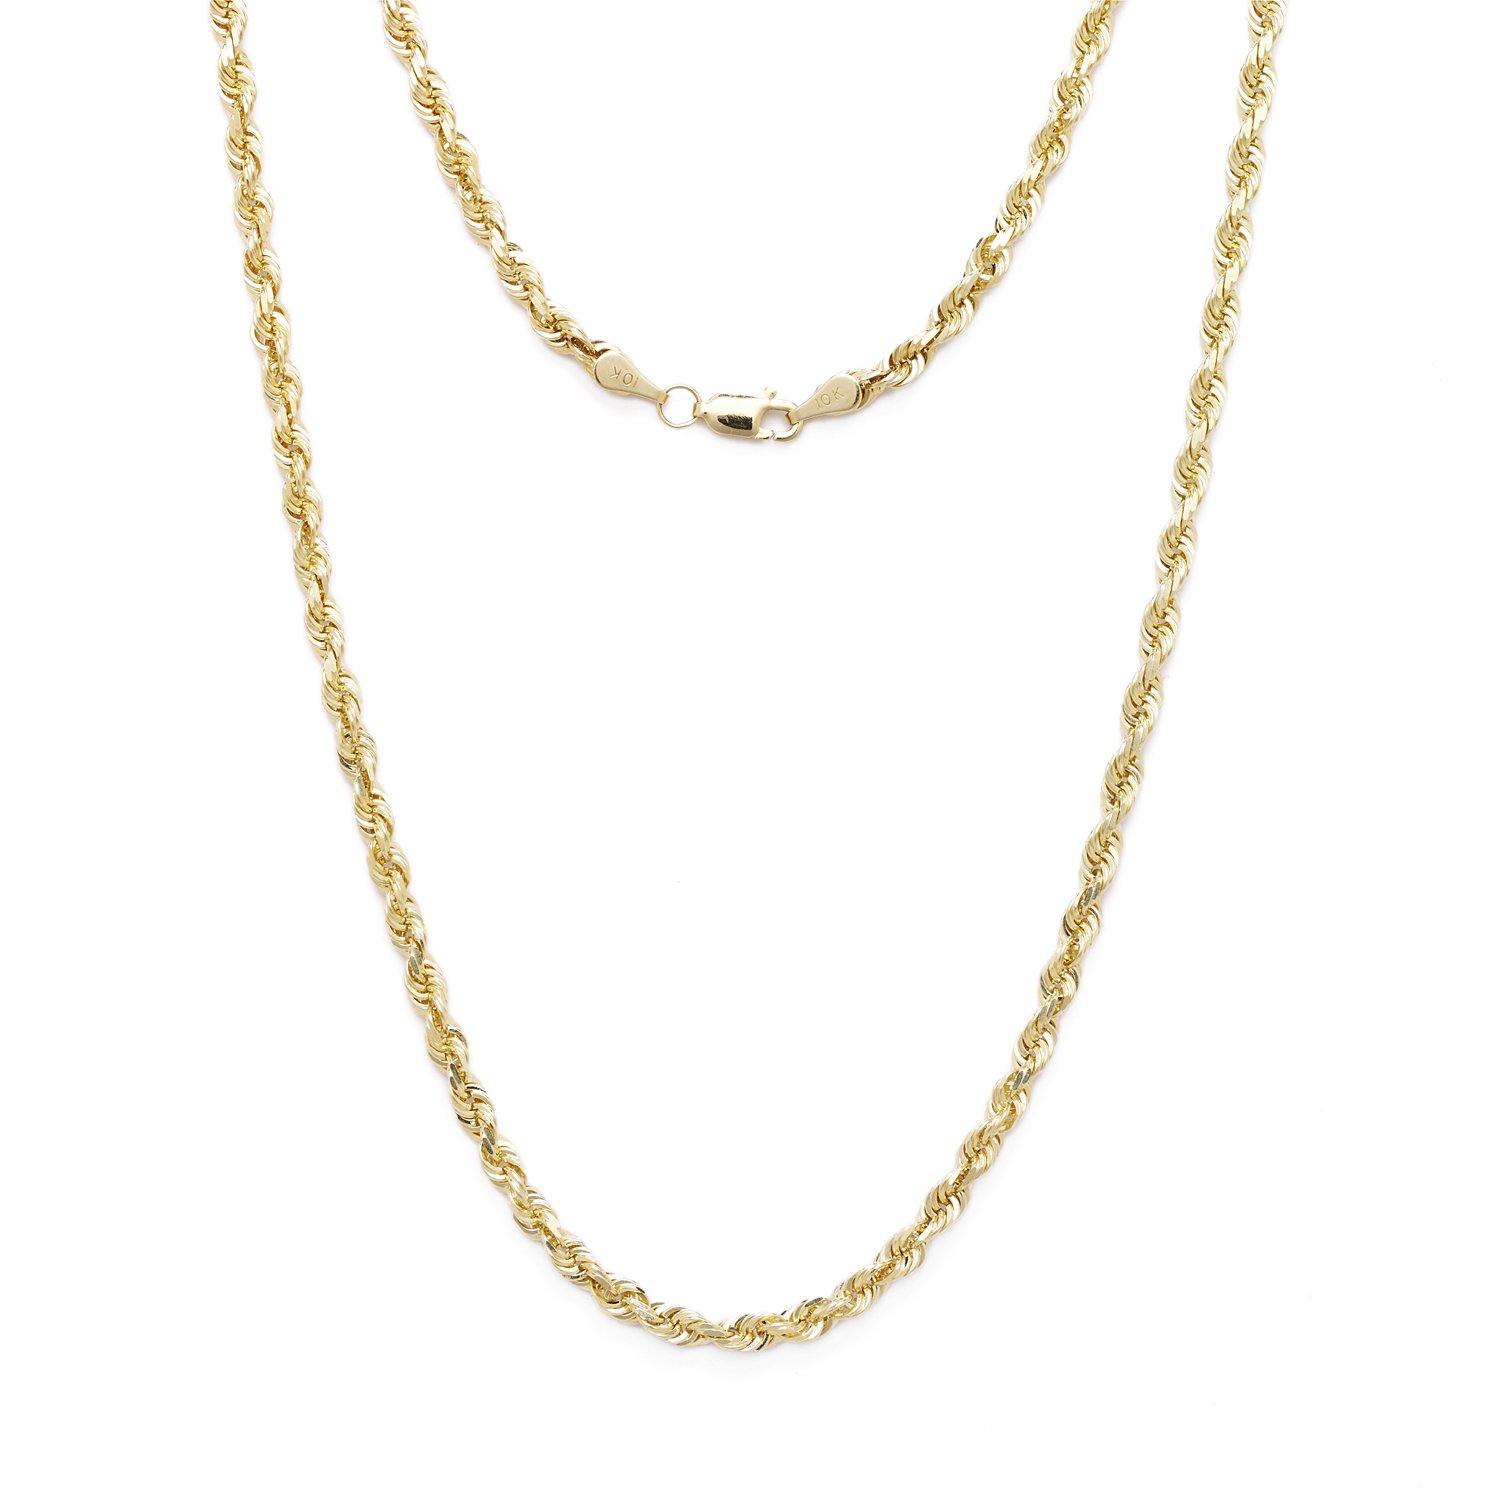 10k Yellow Gold Solid Diamond Cut Rope Chain Necklace wit...